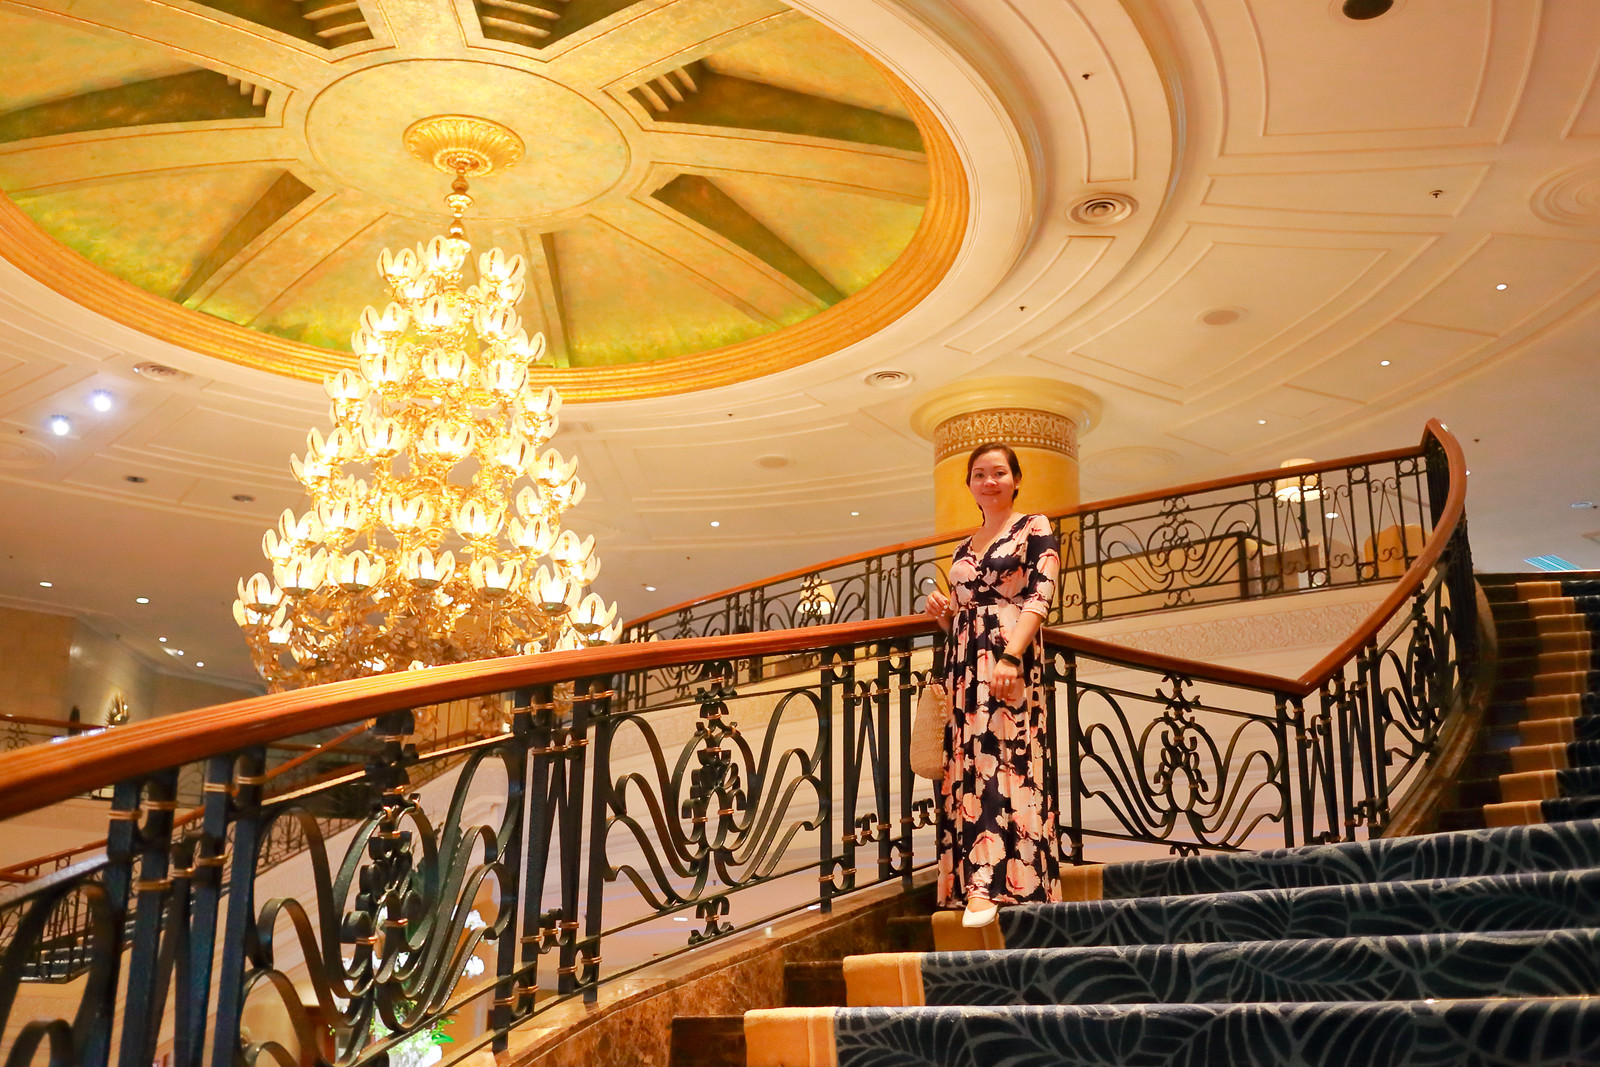 Jaycelle by the Shangri-La Hotel's Staircase